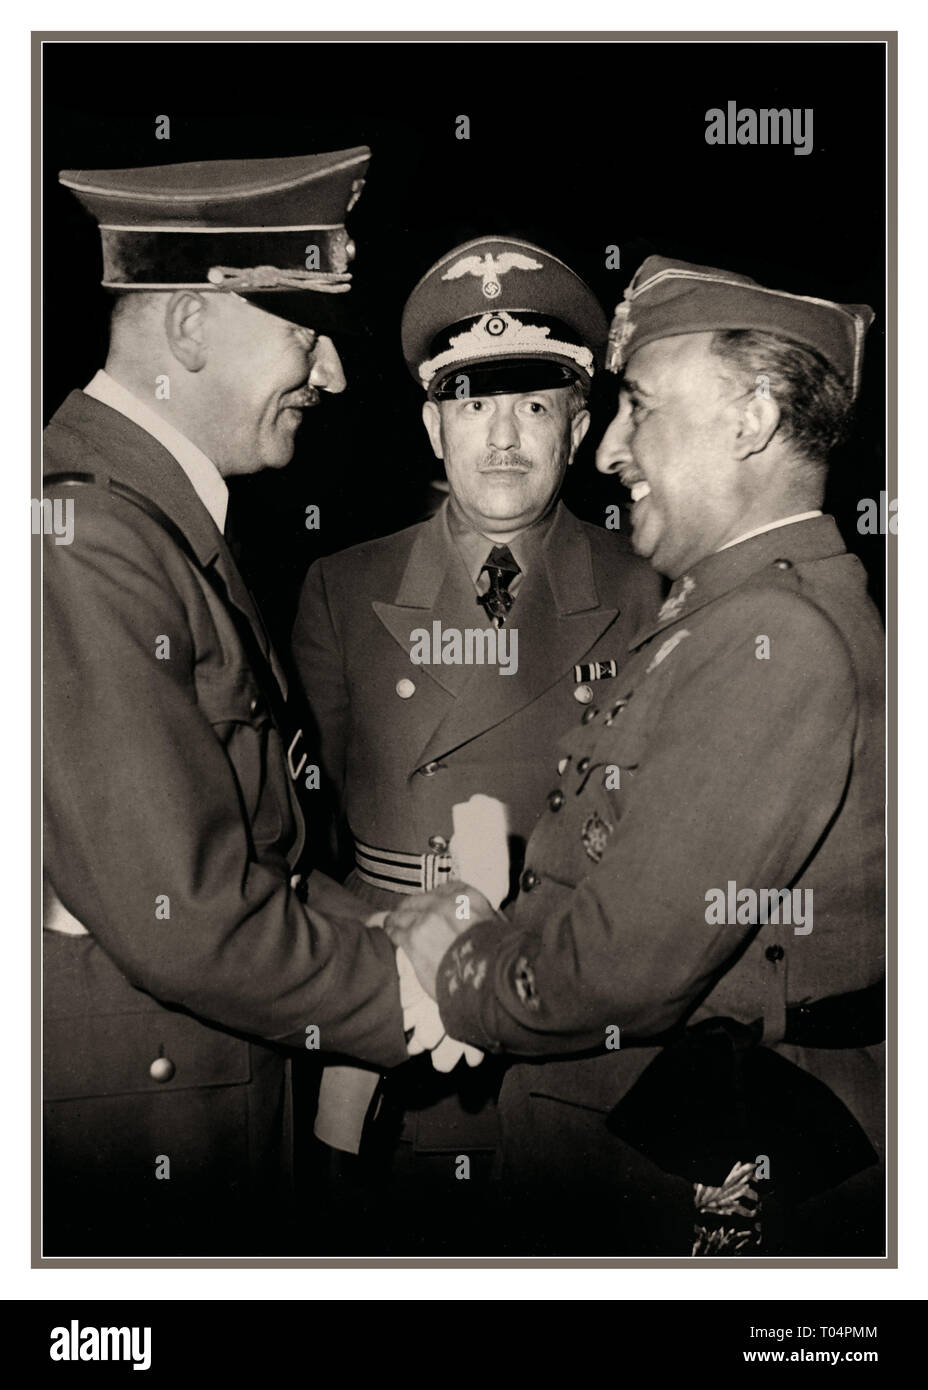 Adolf Hitler and Eberhard von Stohrer greeting General Franco at Hendaye, moments after arriving from his train at around 15:15. 23rd October 1940 Francisco Franco (1892 - 1975) Spanish general and dictator who governed Spain from 1939 to 1975 greeting Adolf Hitler, Nazi German dictator (1889 - 1945). meeting at Hendaye near the Spanish border. - Stock Image